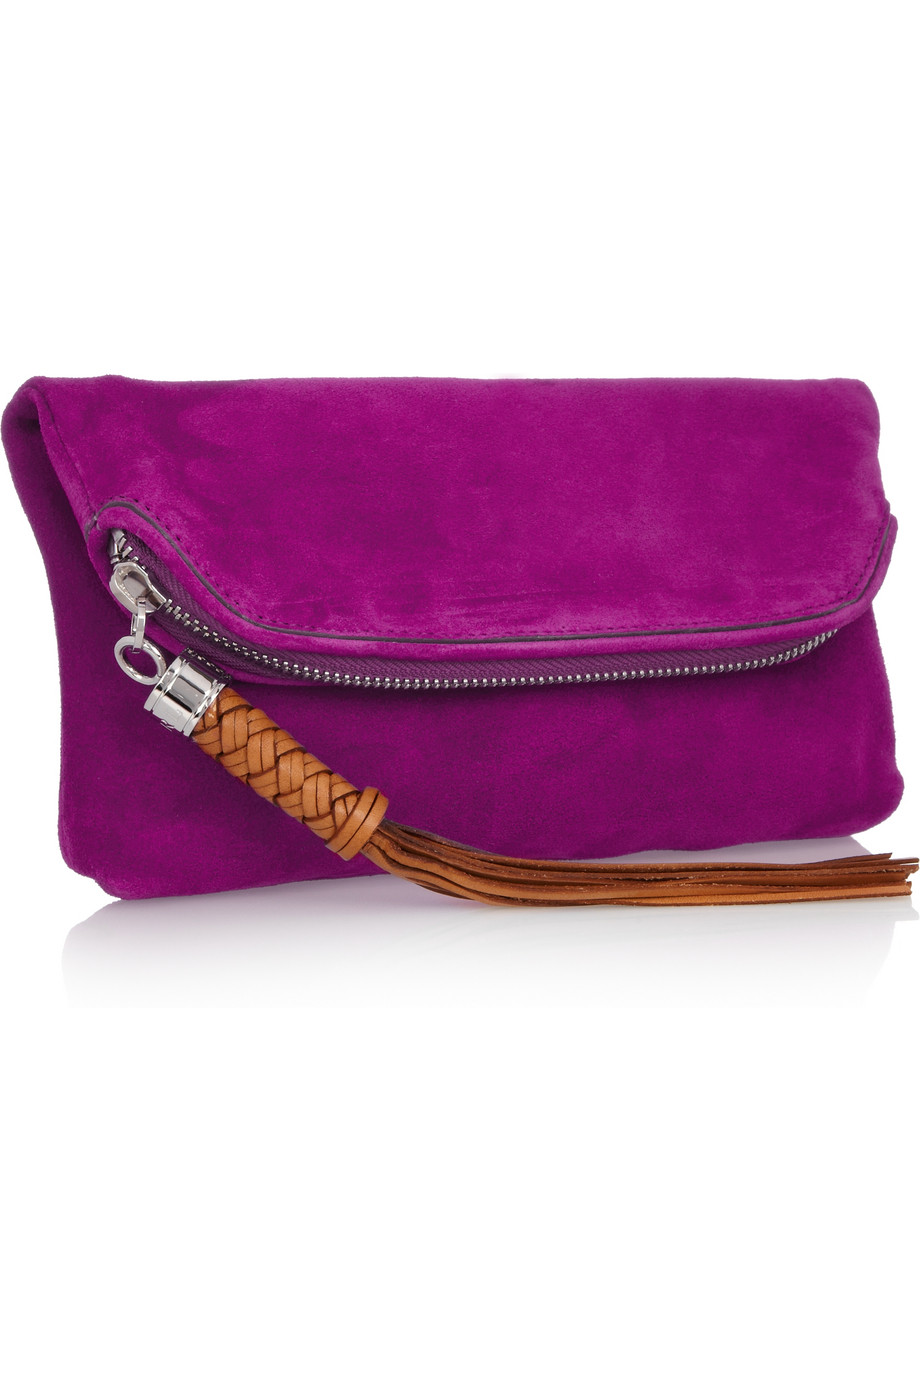 lyst ralph lauren collection tasseled suede clutch in purple. Black Bedroom Furniture Sets. Home Design Ideas